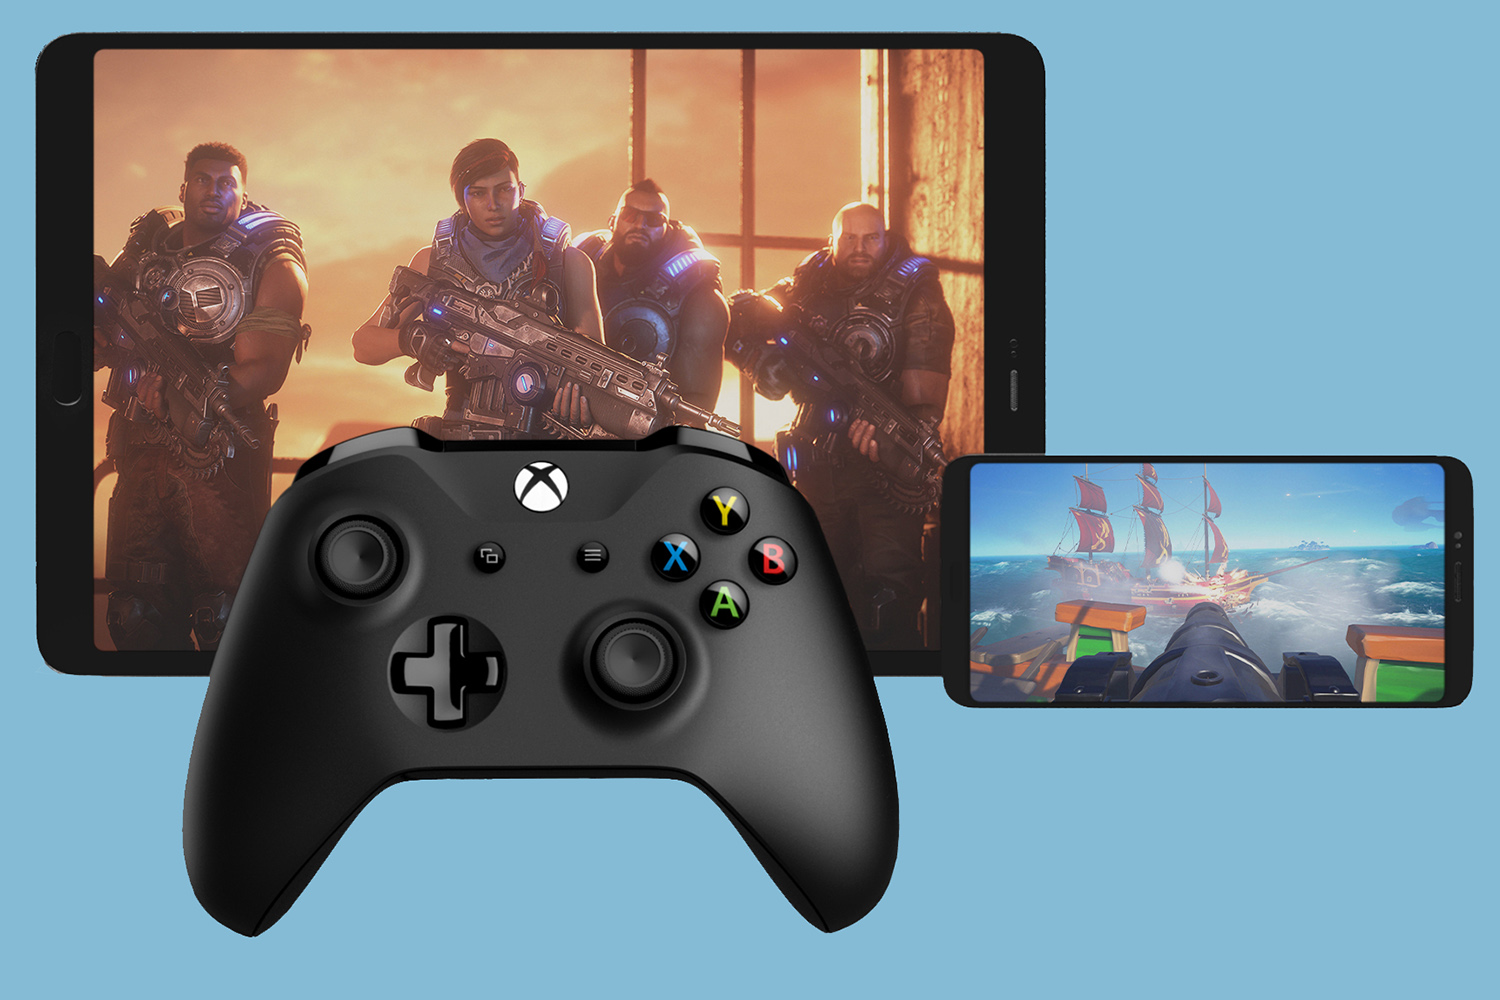 Xbox xCloud is a way to stream games over the internet